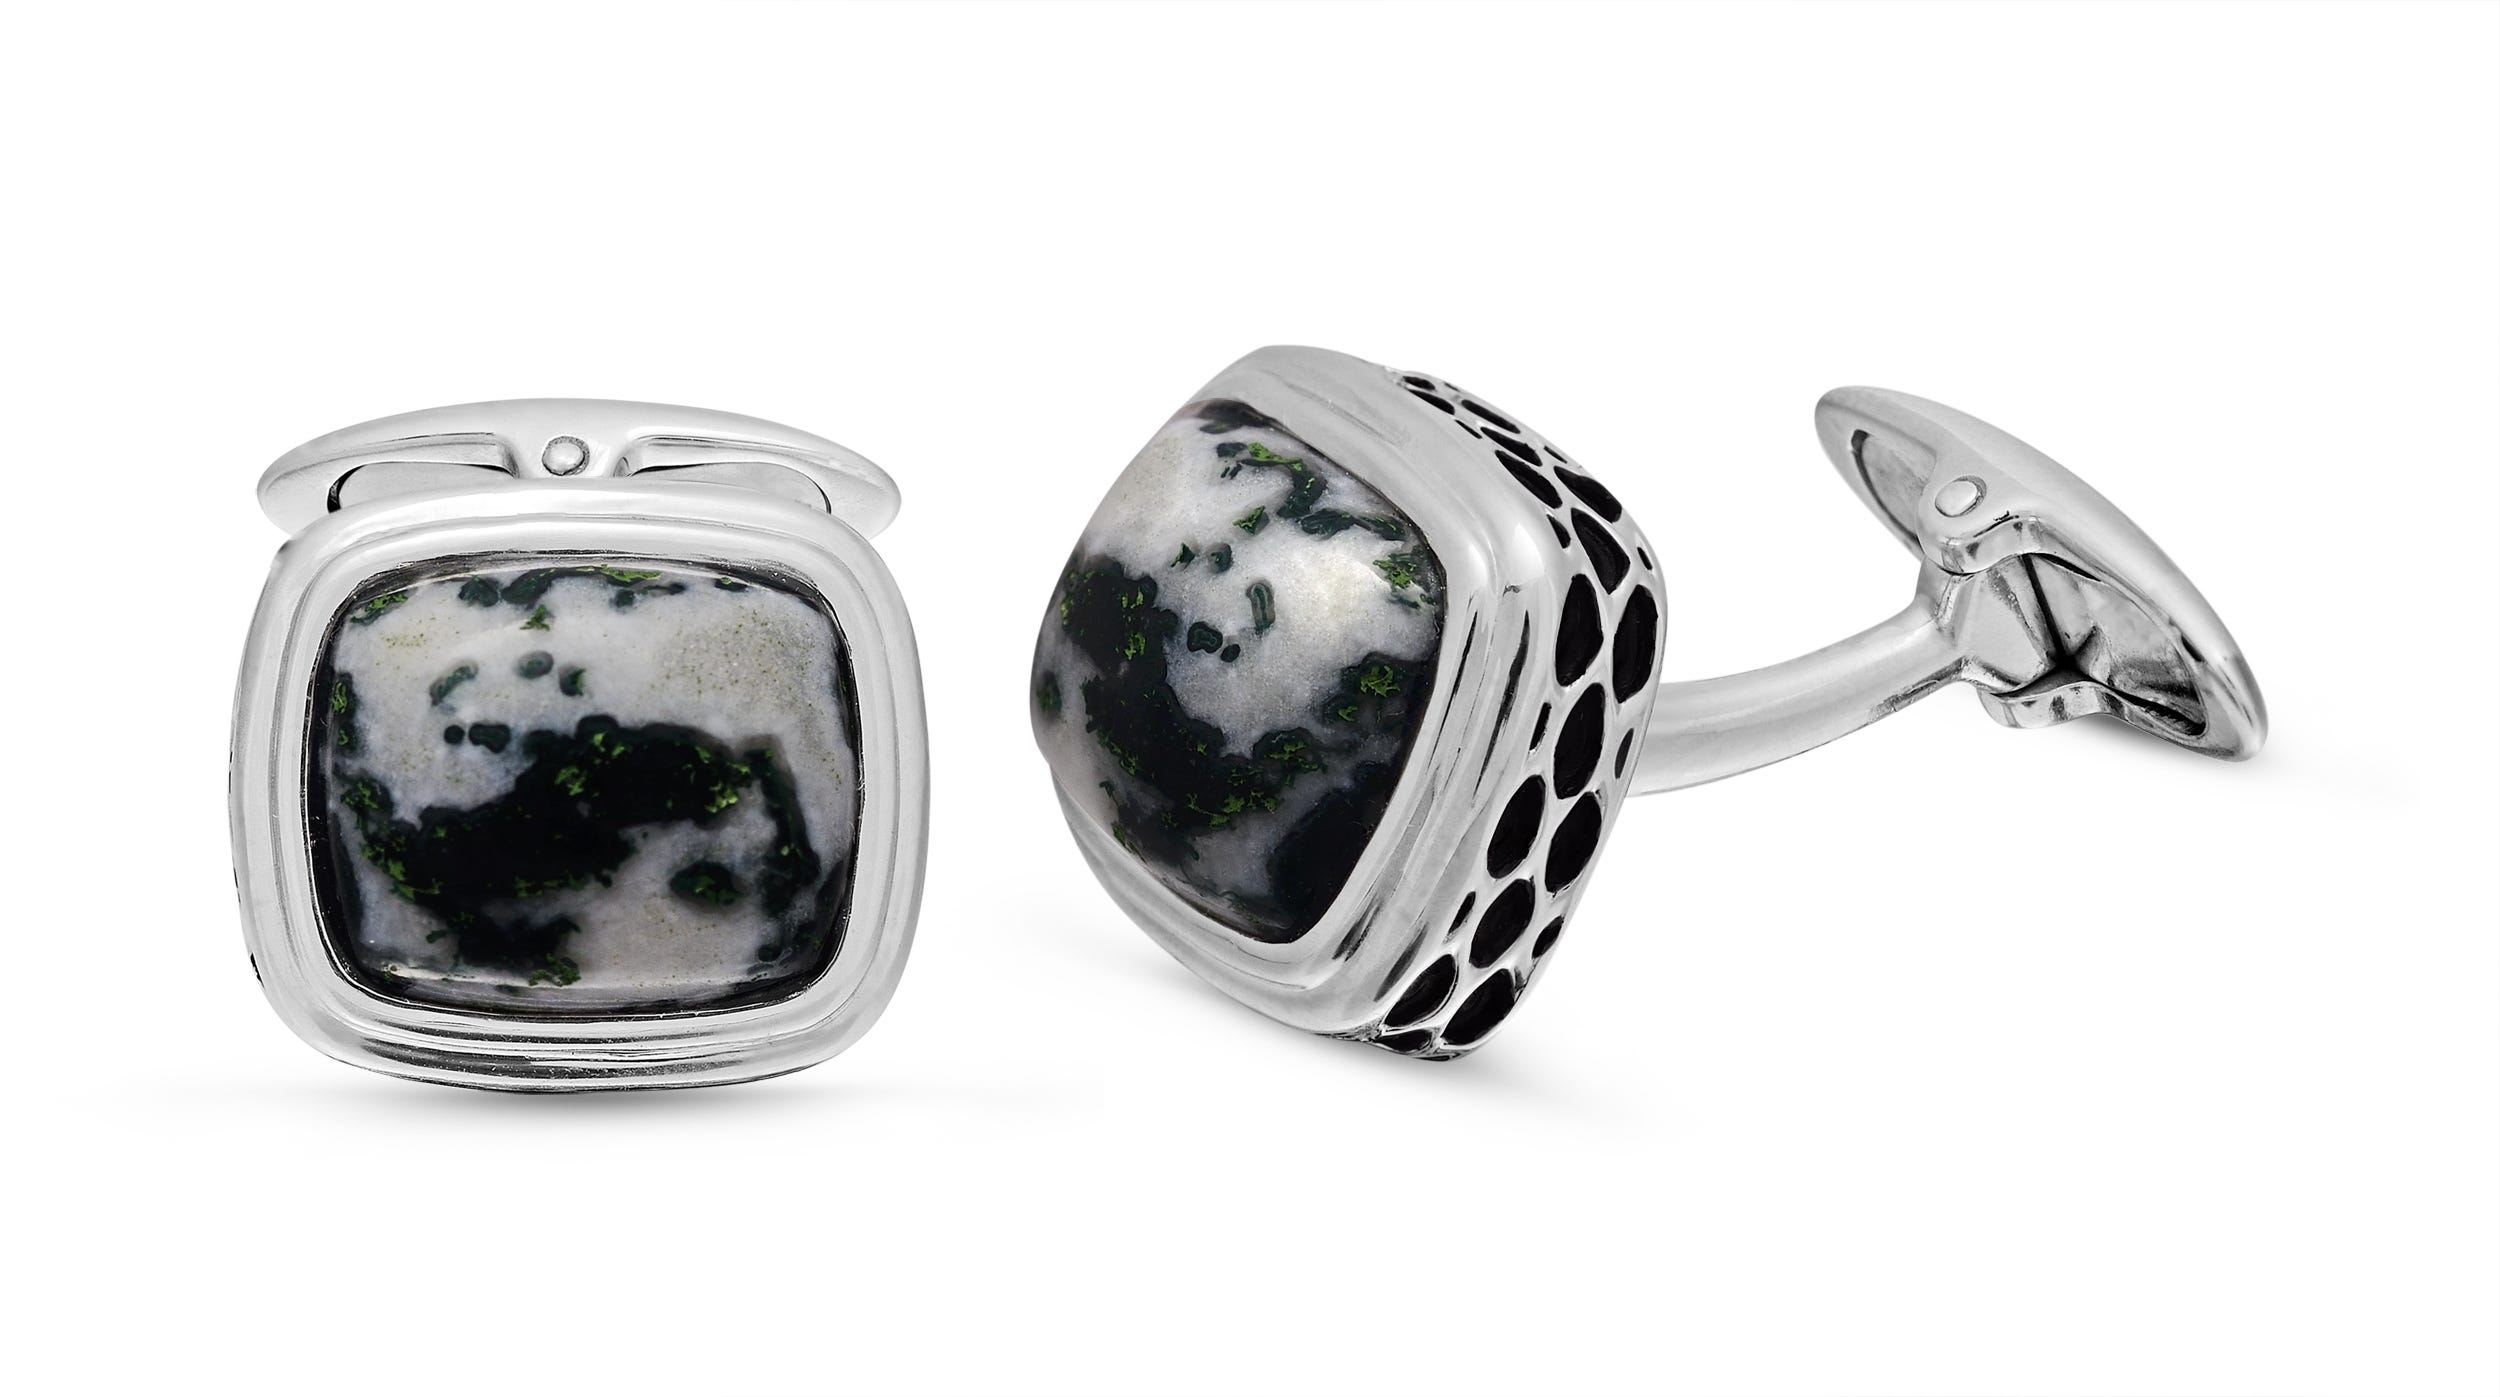 Tree Agate Stone Cufflinks in Sterling Silver & Black Rhodium